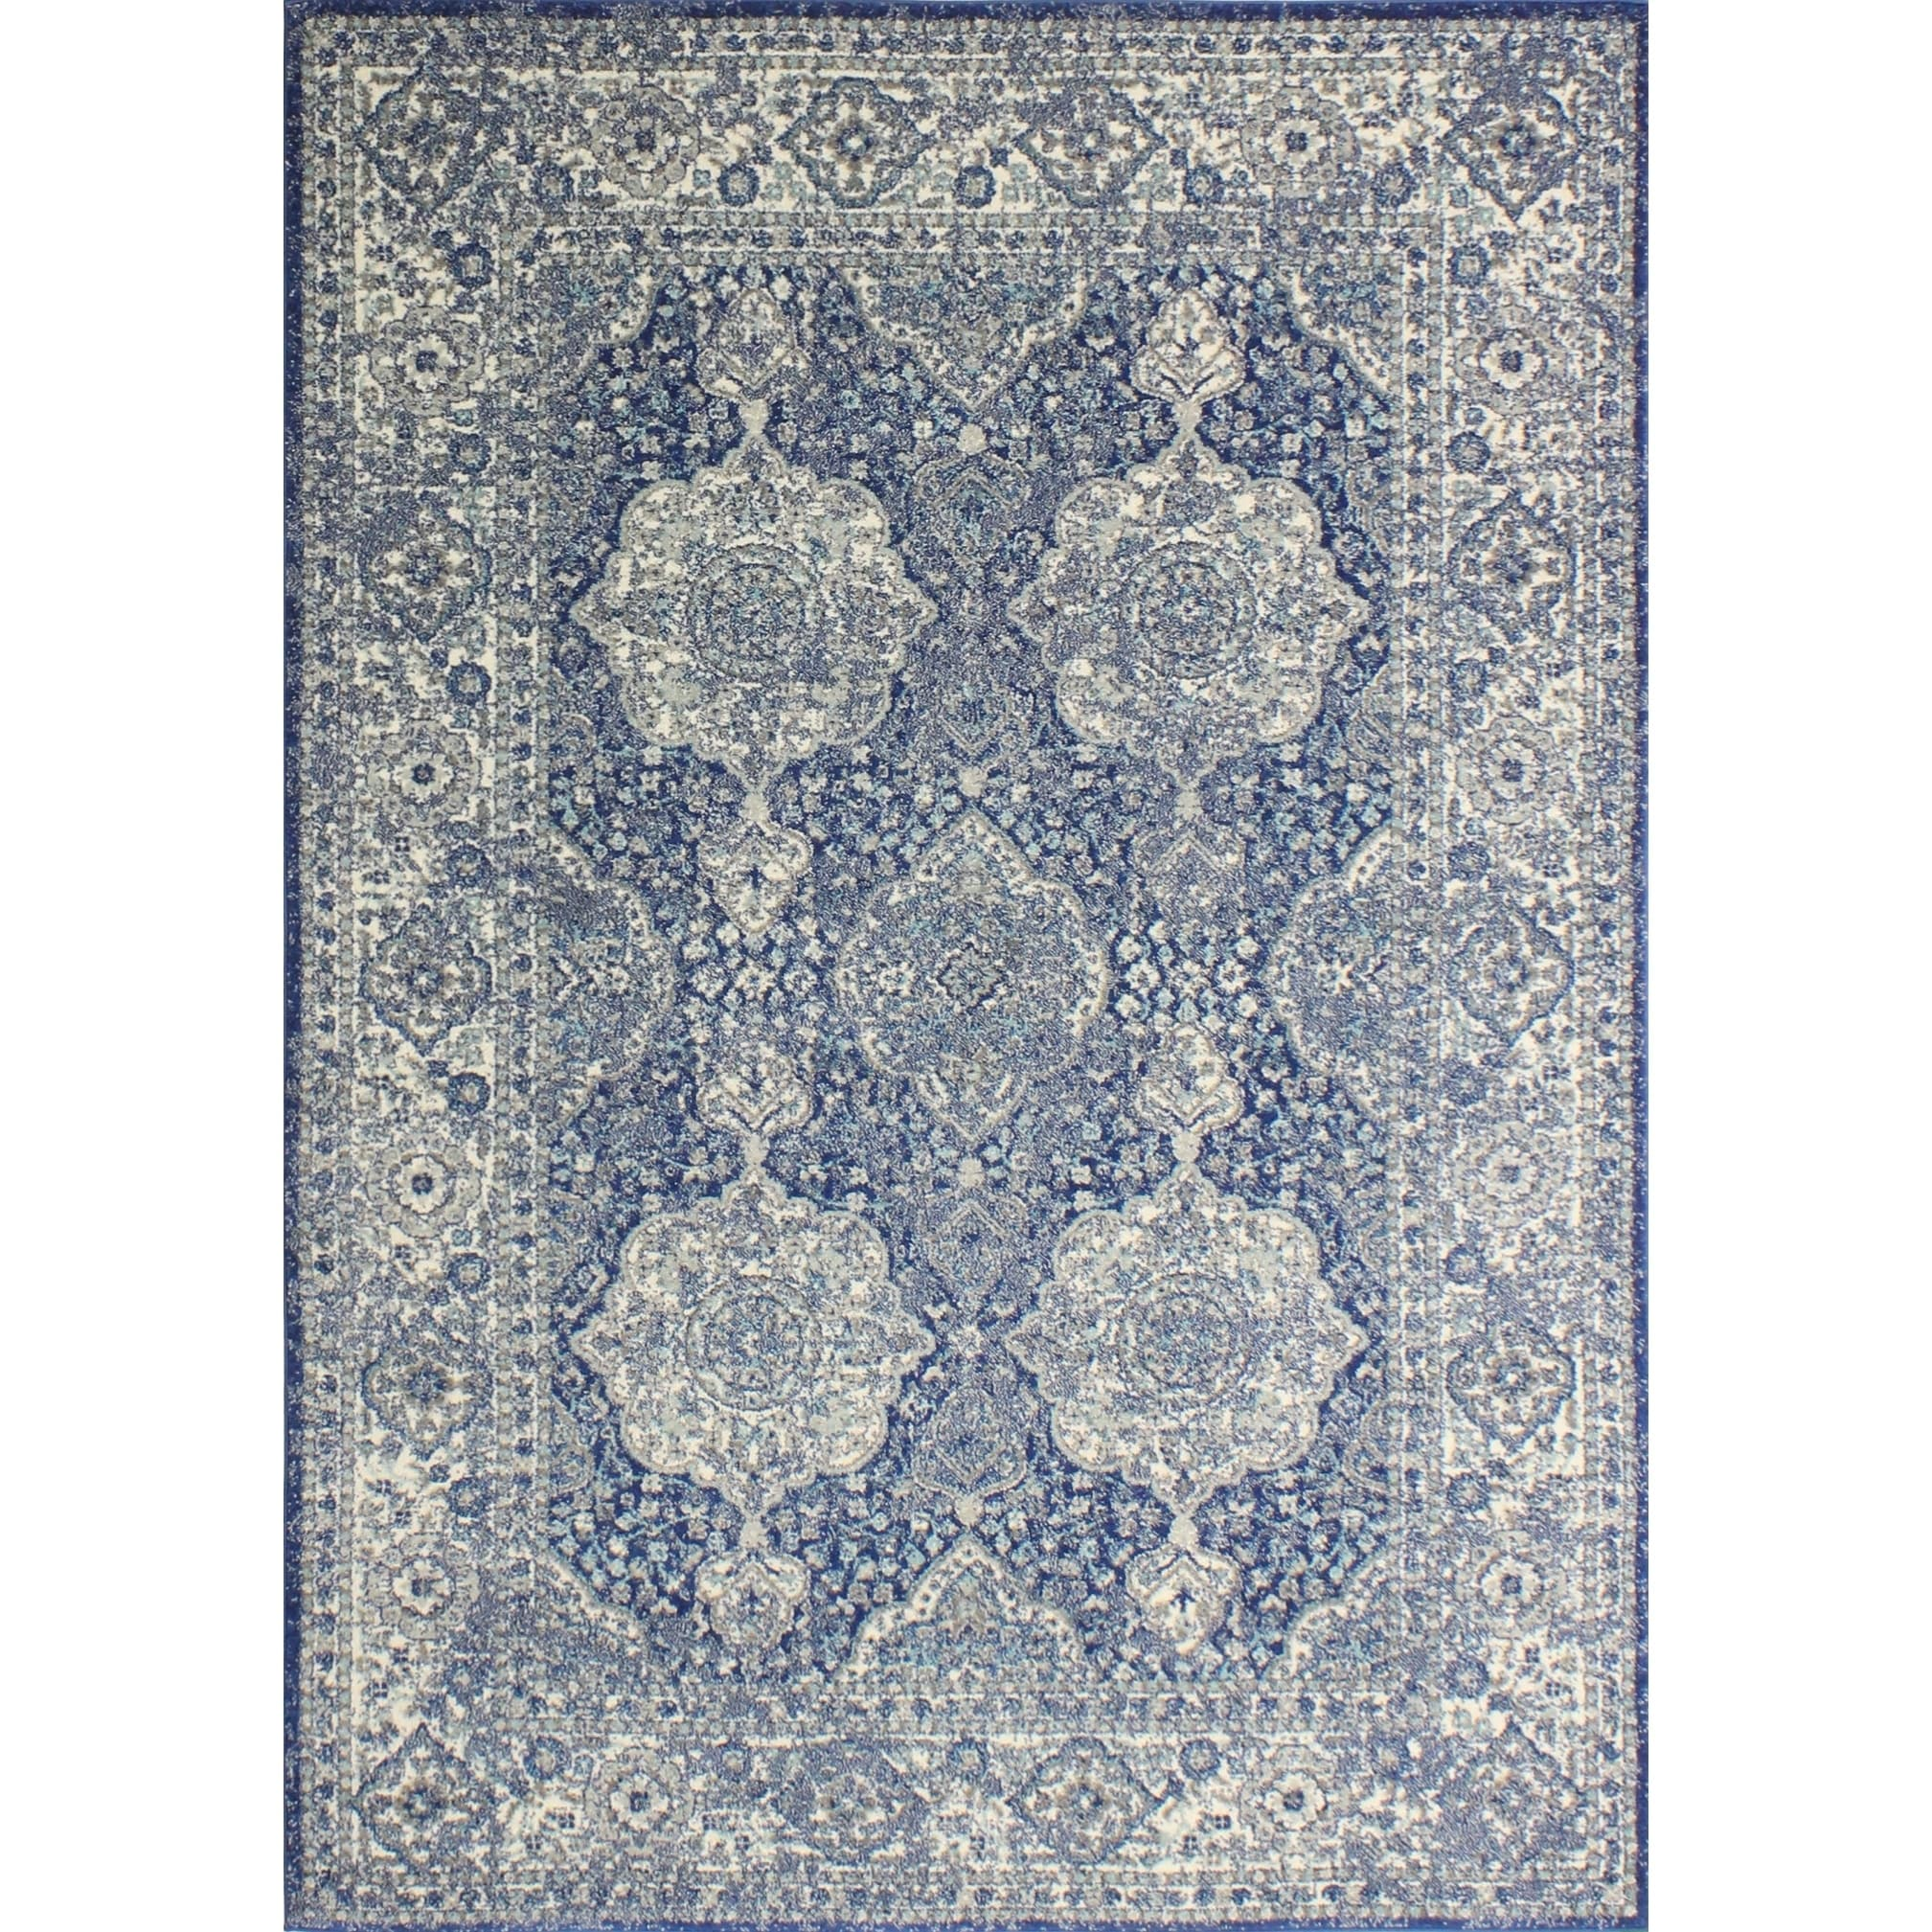 Alberta Dark Blue Transitional  Area Rug - 86 x 116 (Dark Blue - 86 x 116)